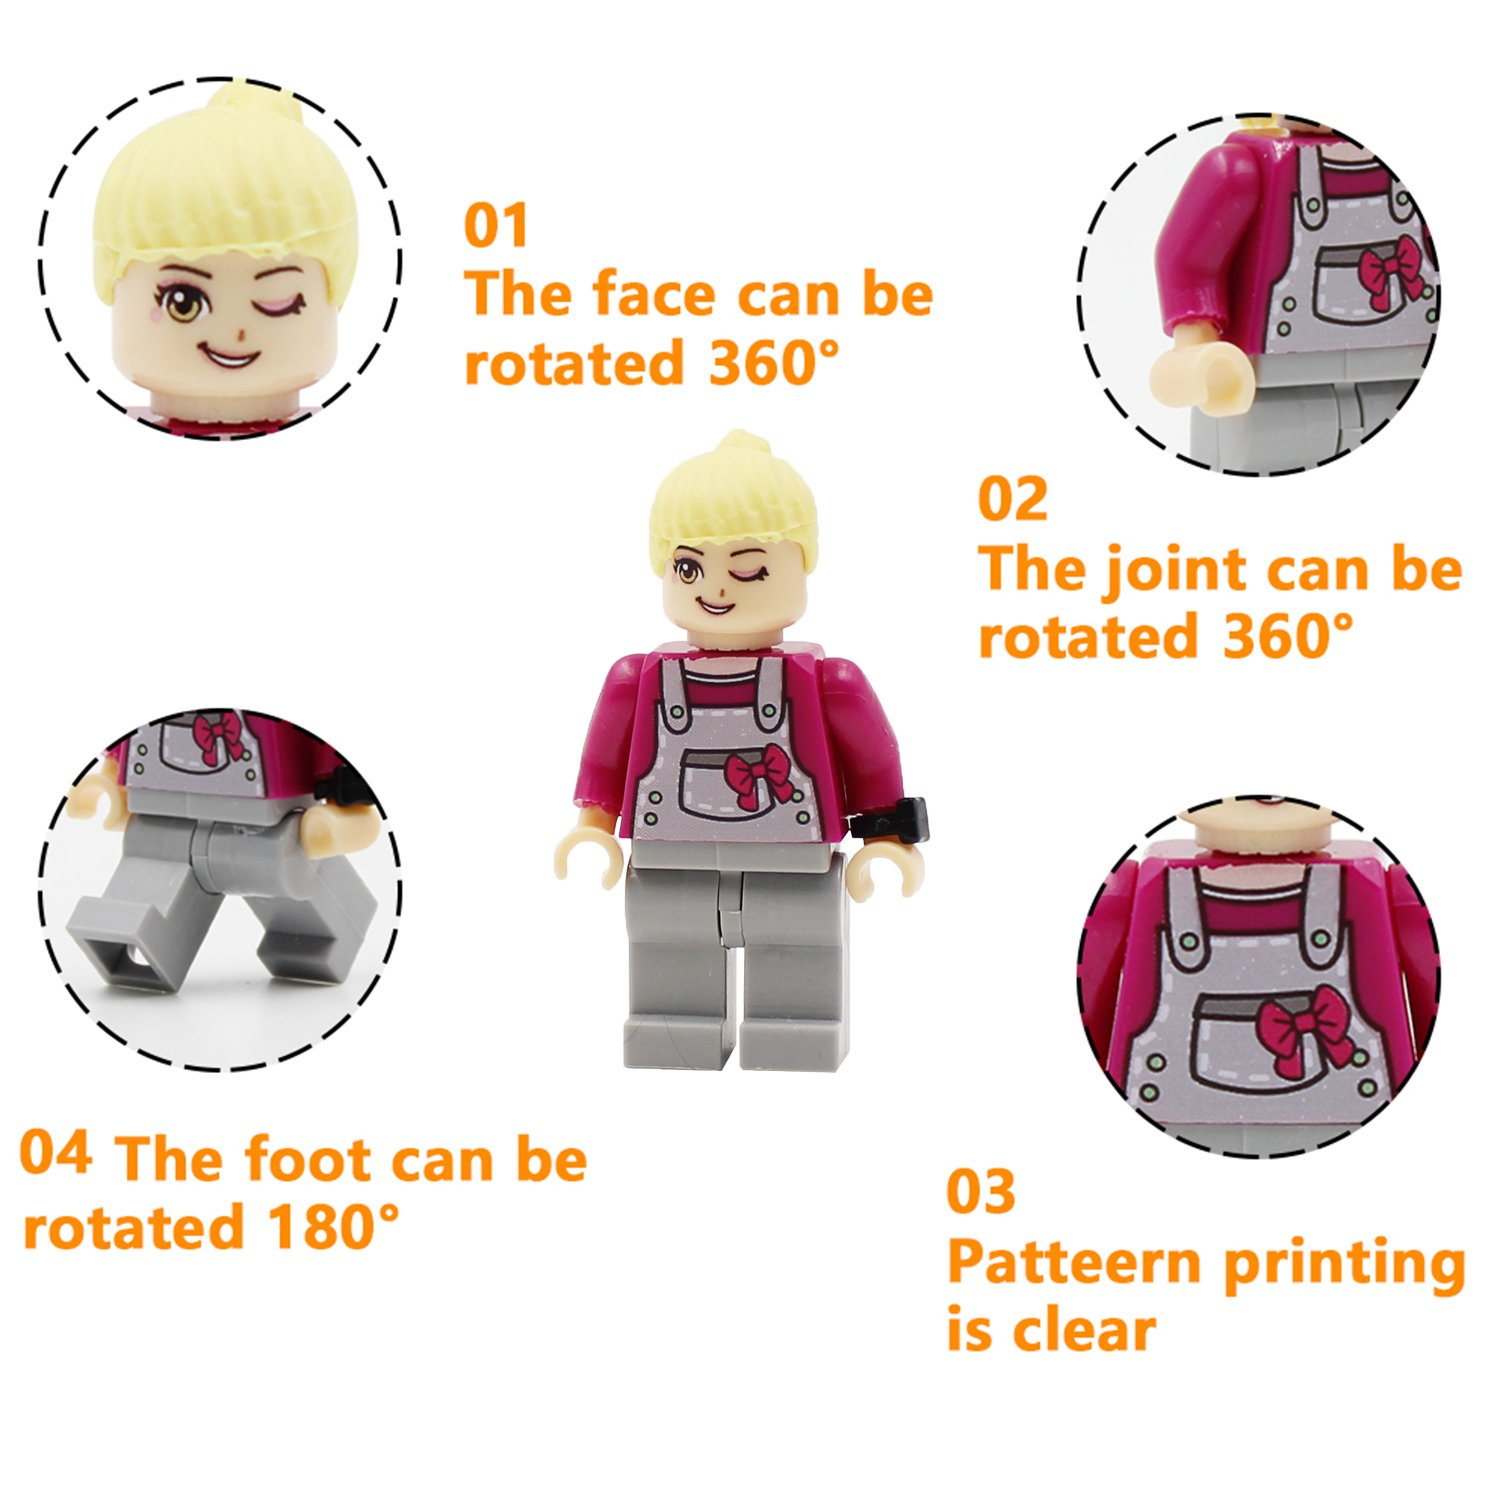 Maykid Mini Figures Set-36 Piece Minifigures Set of Professions Building Blocks Kids Educational Toy Gift Building Bricks of Community People from Different Industries Complete